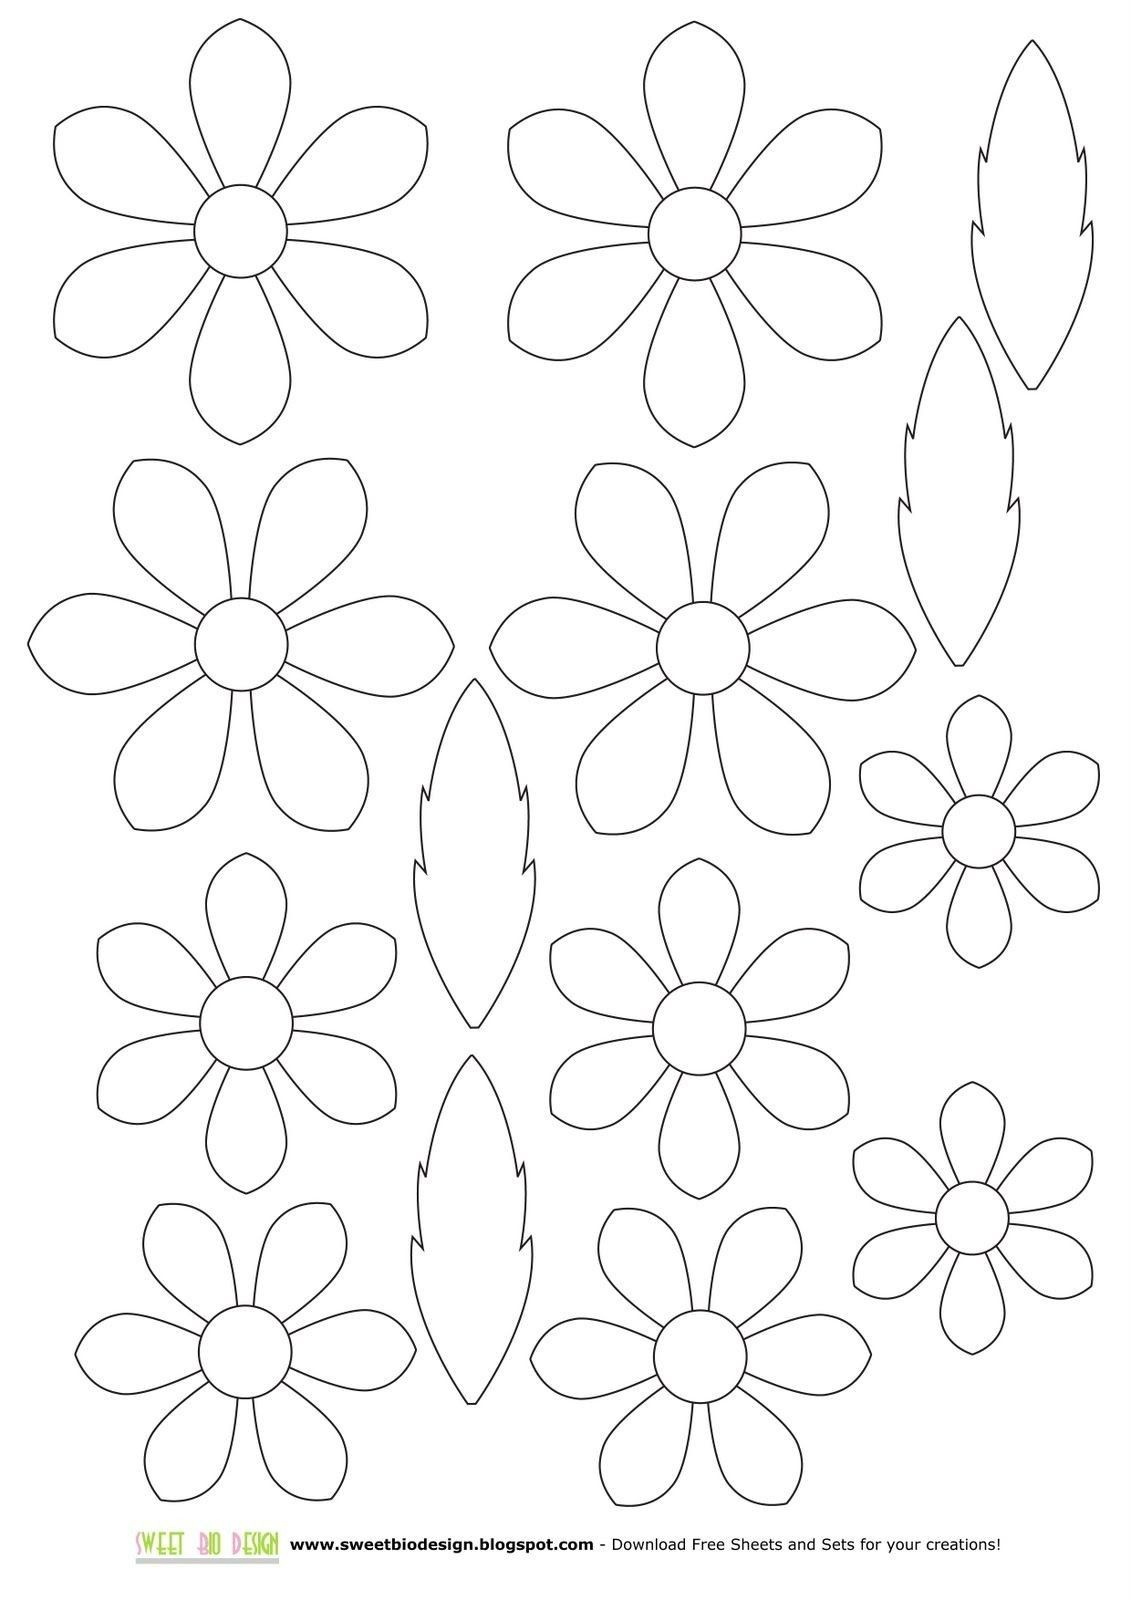 Pin By Desertrossa On Pewter Flower Template Paper Flower Template Paper Flowers Diy